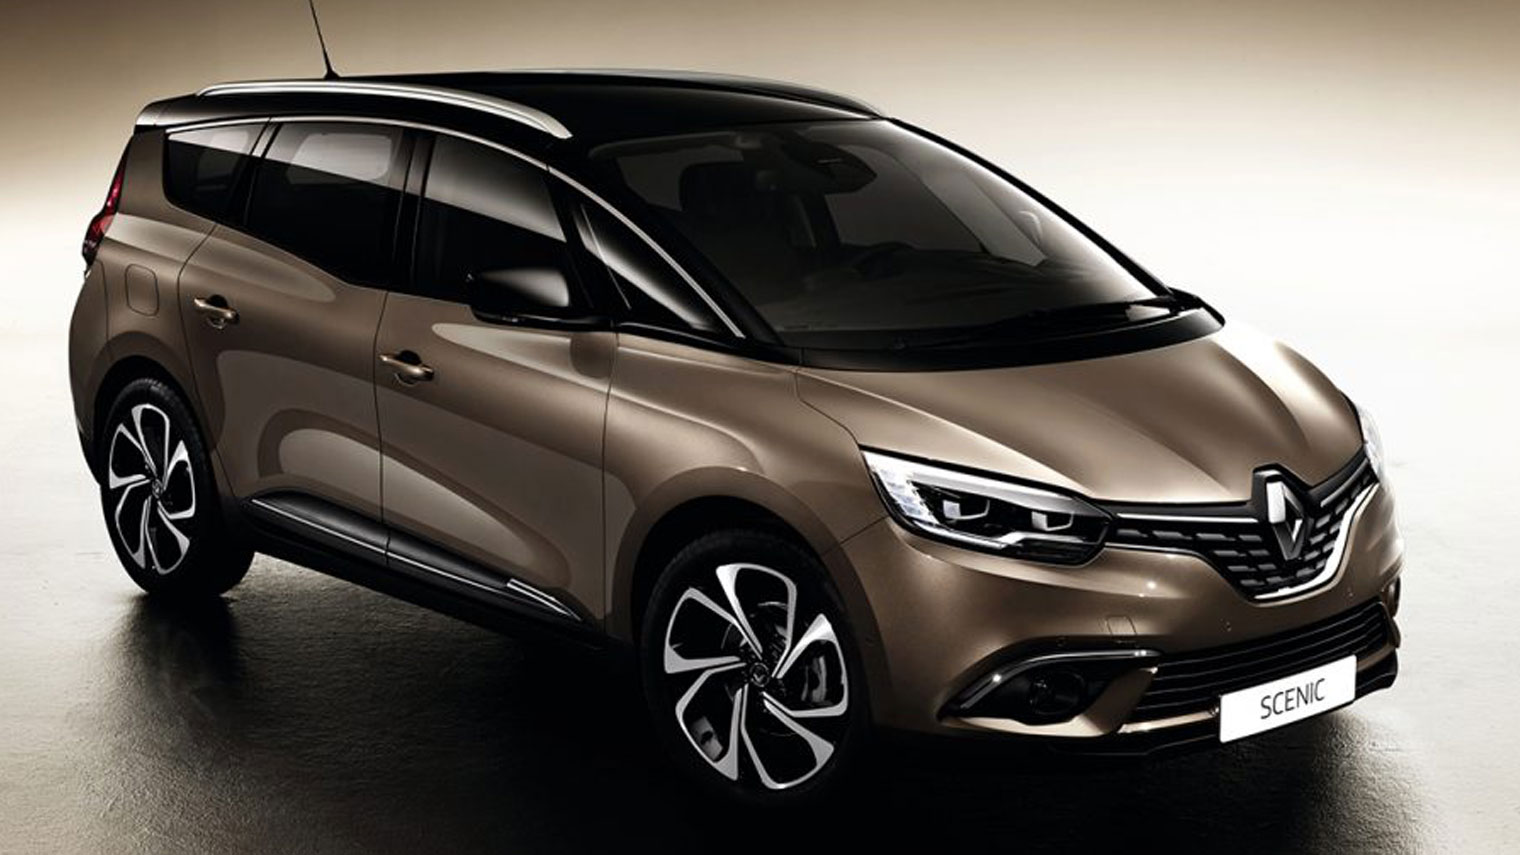 autotest renault grand sc nic tce 140 anwb. Black Bedroom Furniture Sets. Home Design Ideas